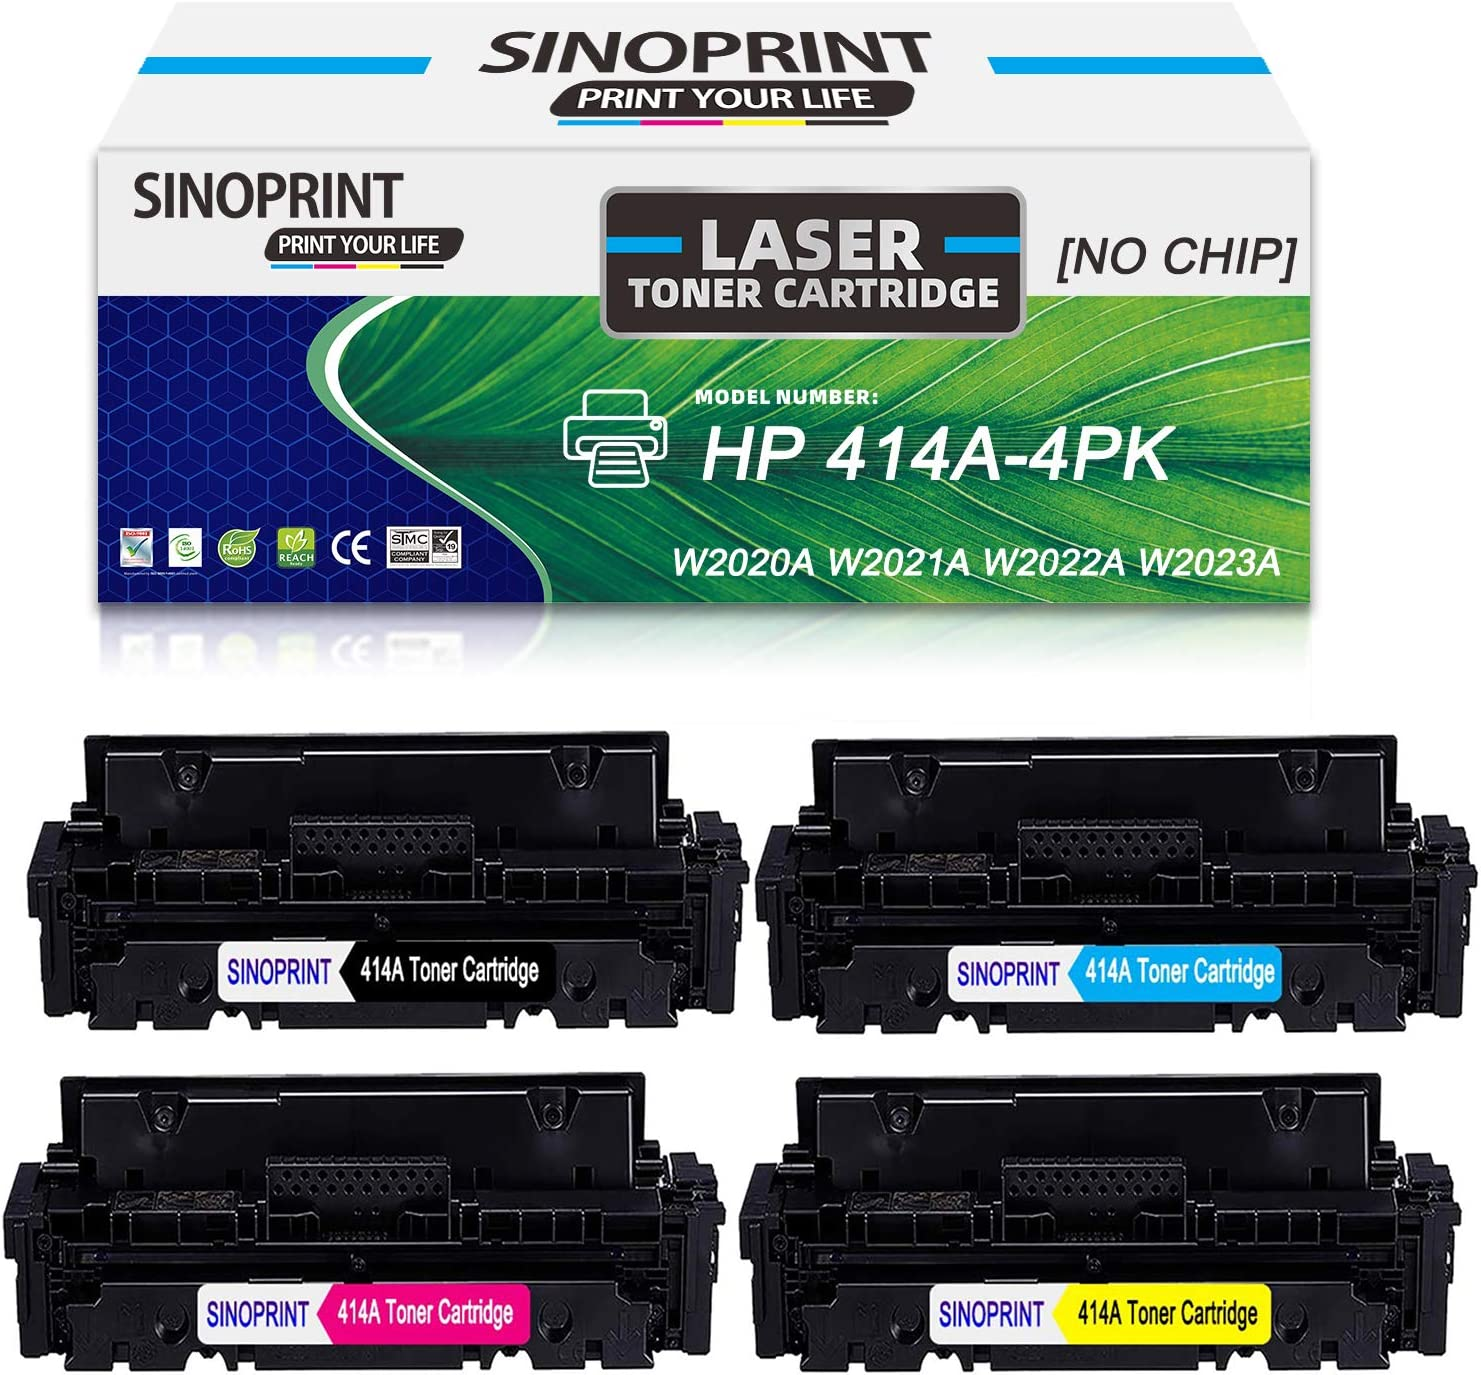 [NO CHIP] SINOPRINT Compatible 414A Toner Cartridge Replacement for HP 414A 414X for HP Color Laserjet Pro M454dw M454 M454dn MFP M479fdw M479fdn Printers (W2020A W2021A W2022A W2023A, 4 Pack)